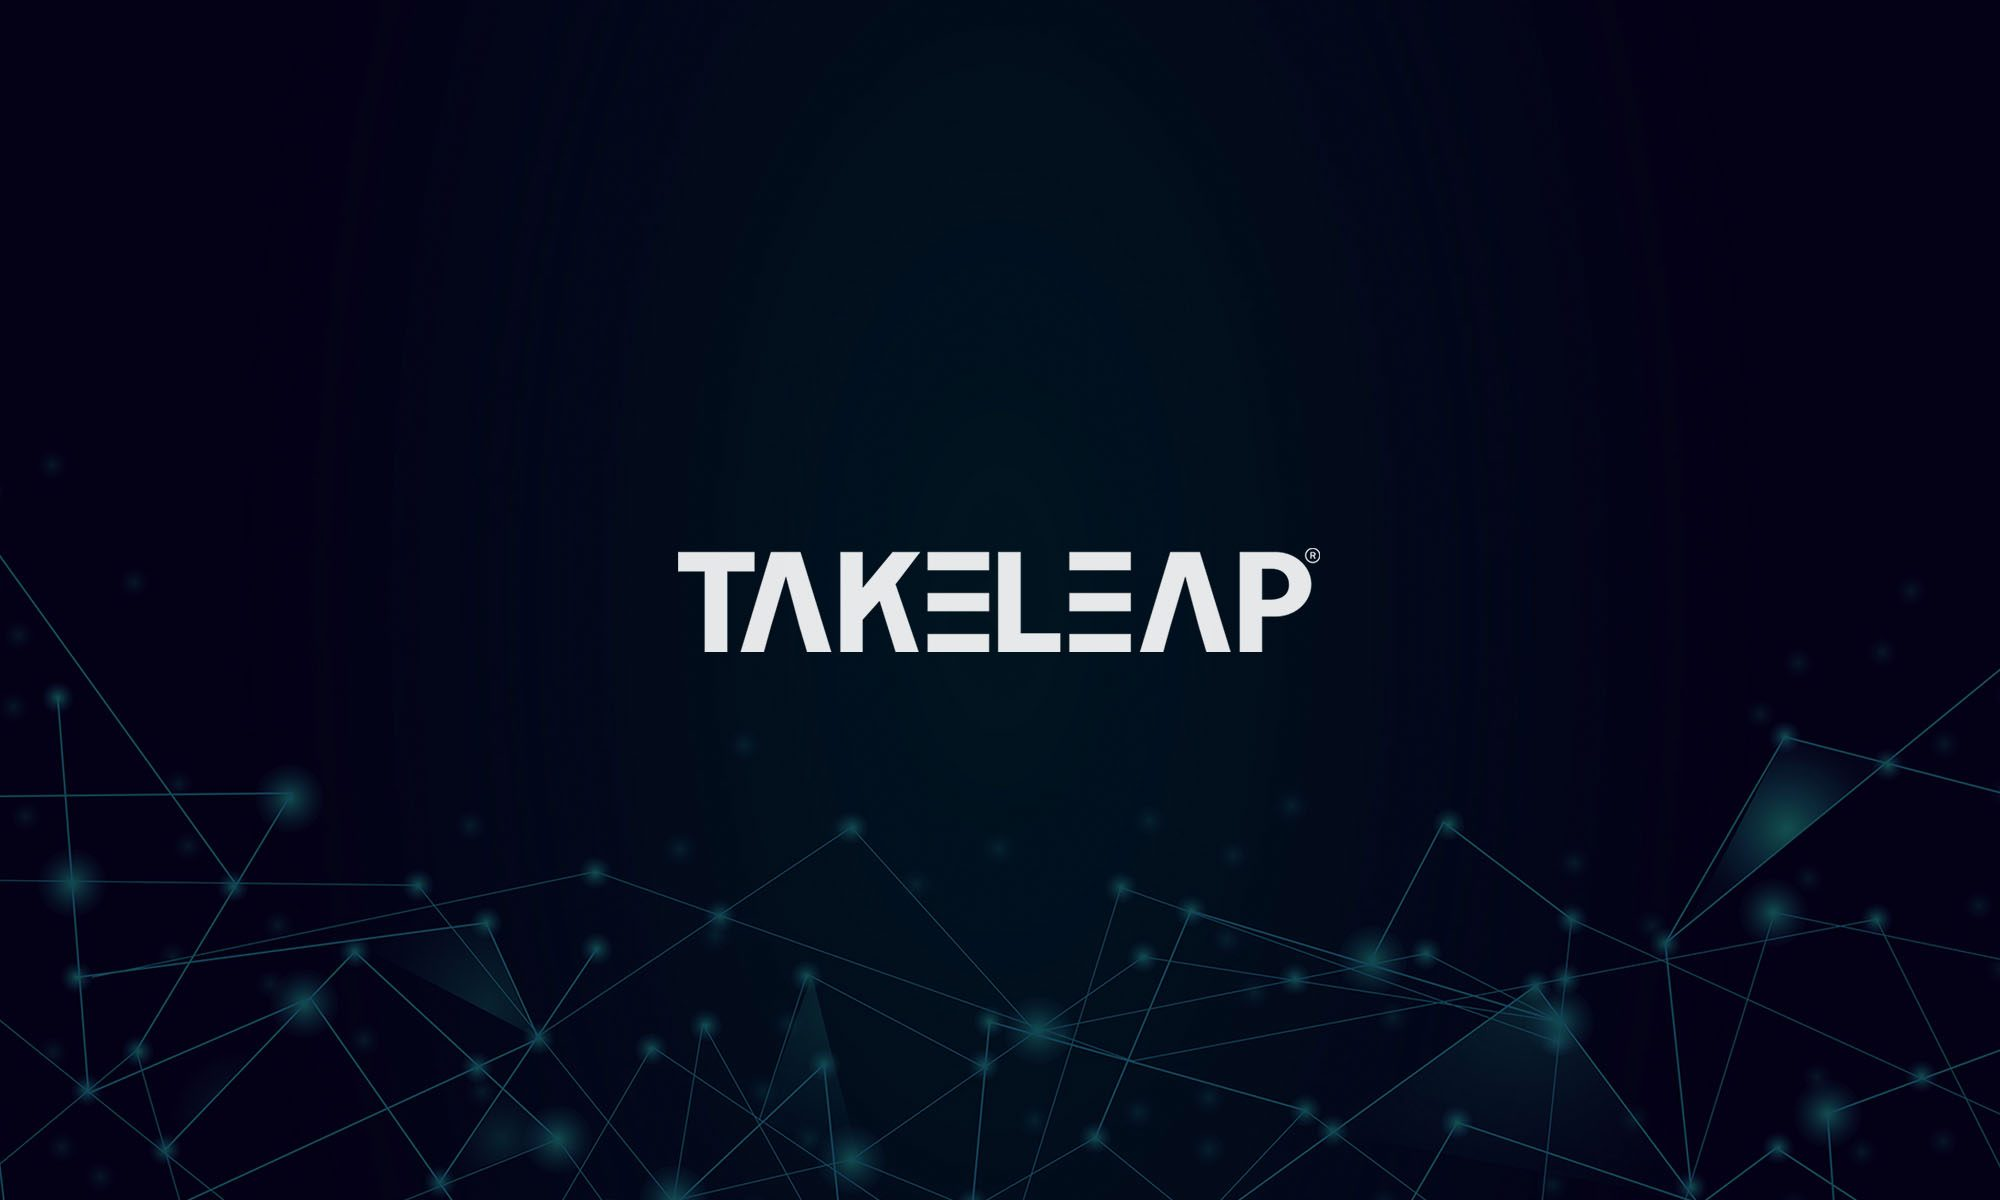 TAKELEAP - Artificial Intelligence company logo